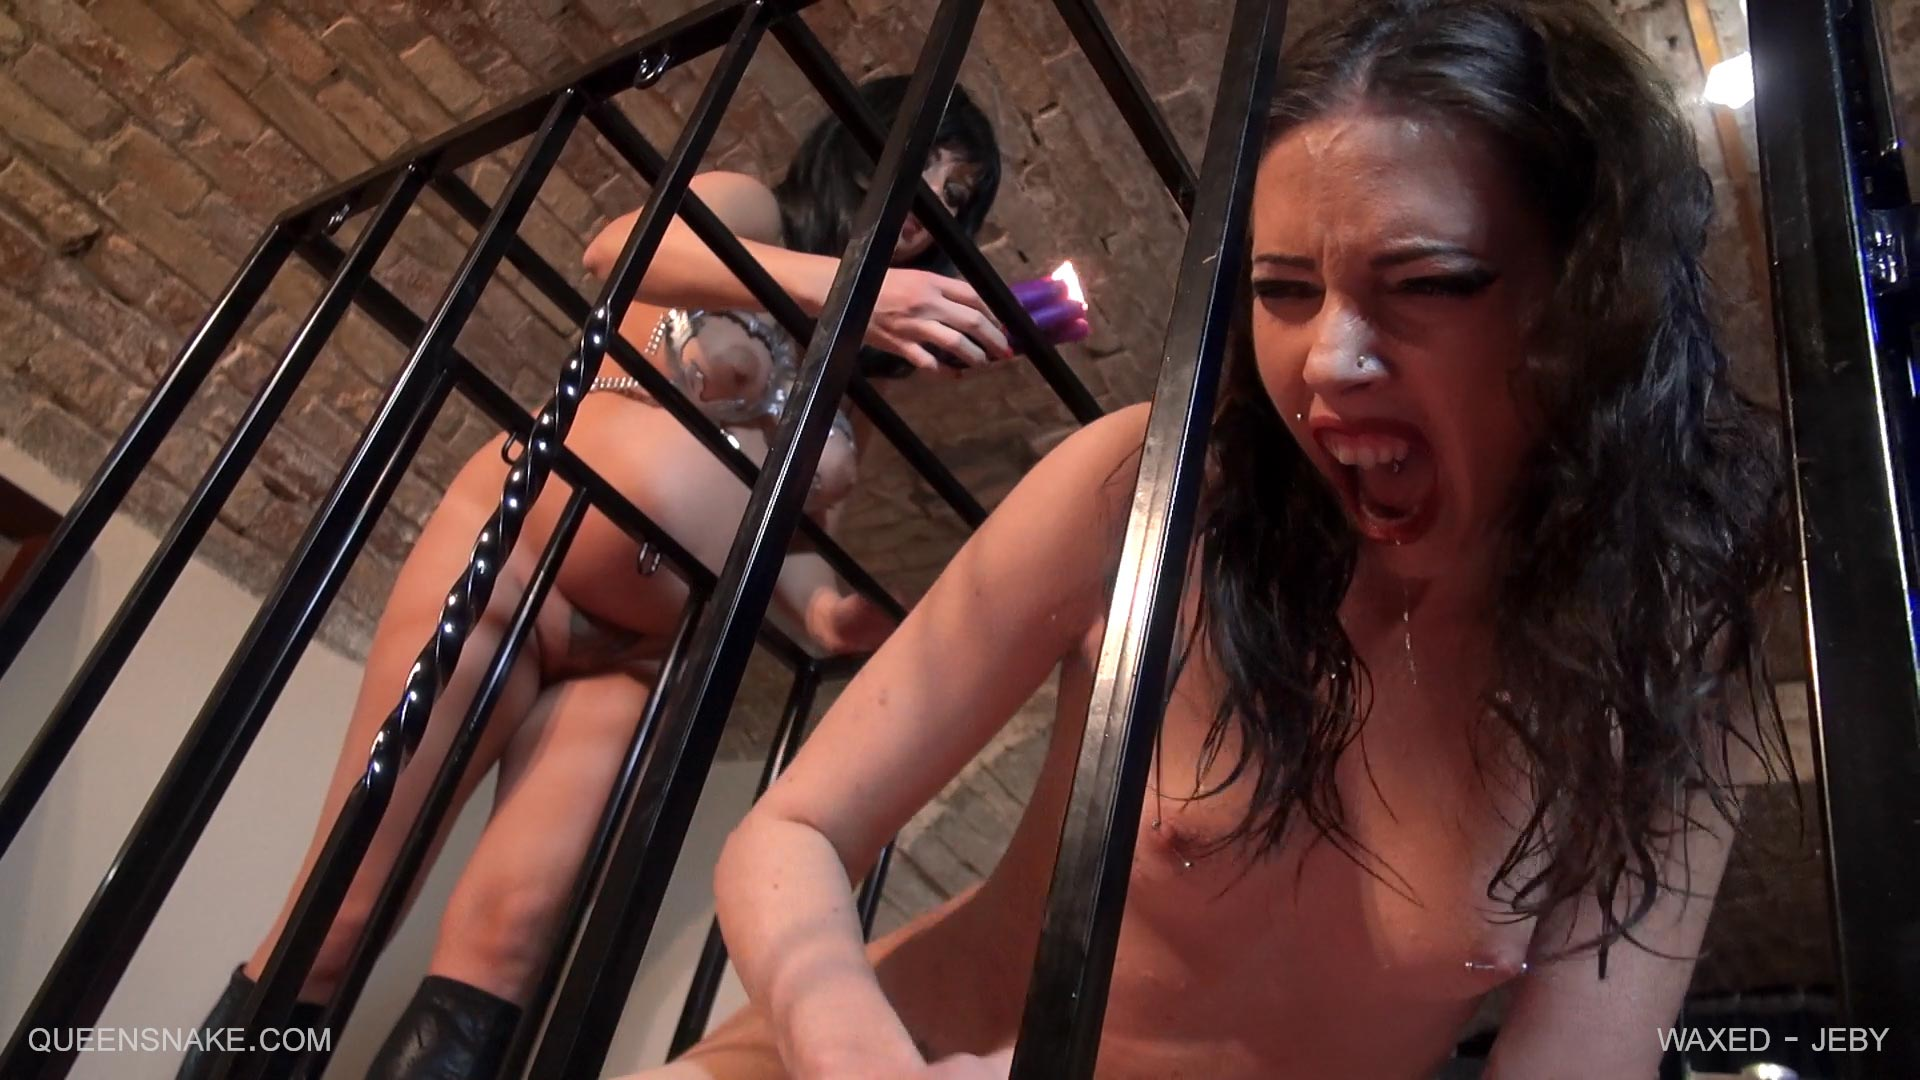 image Caged waxed whipped 1